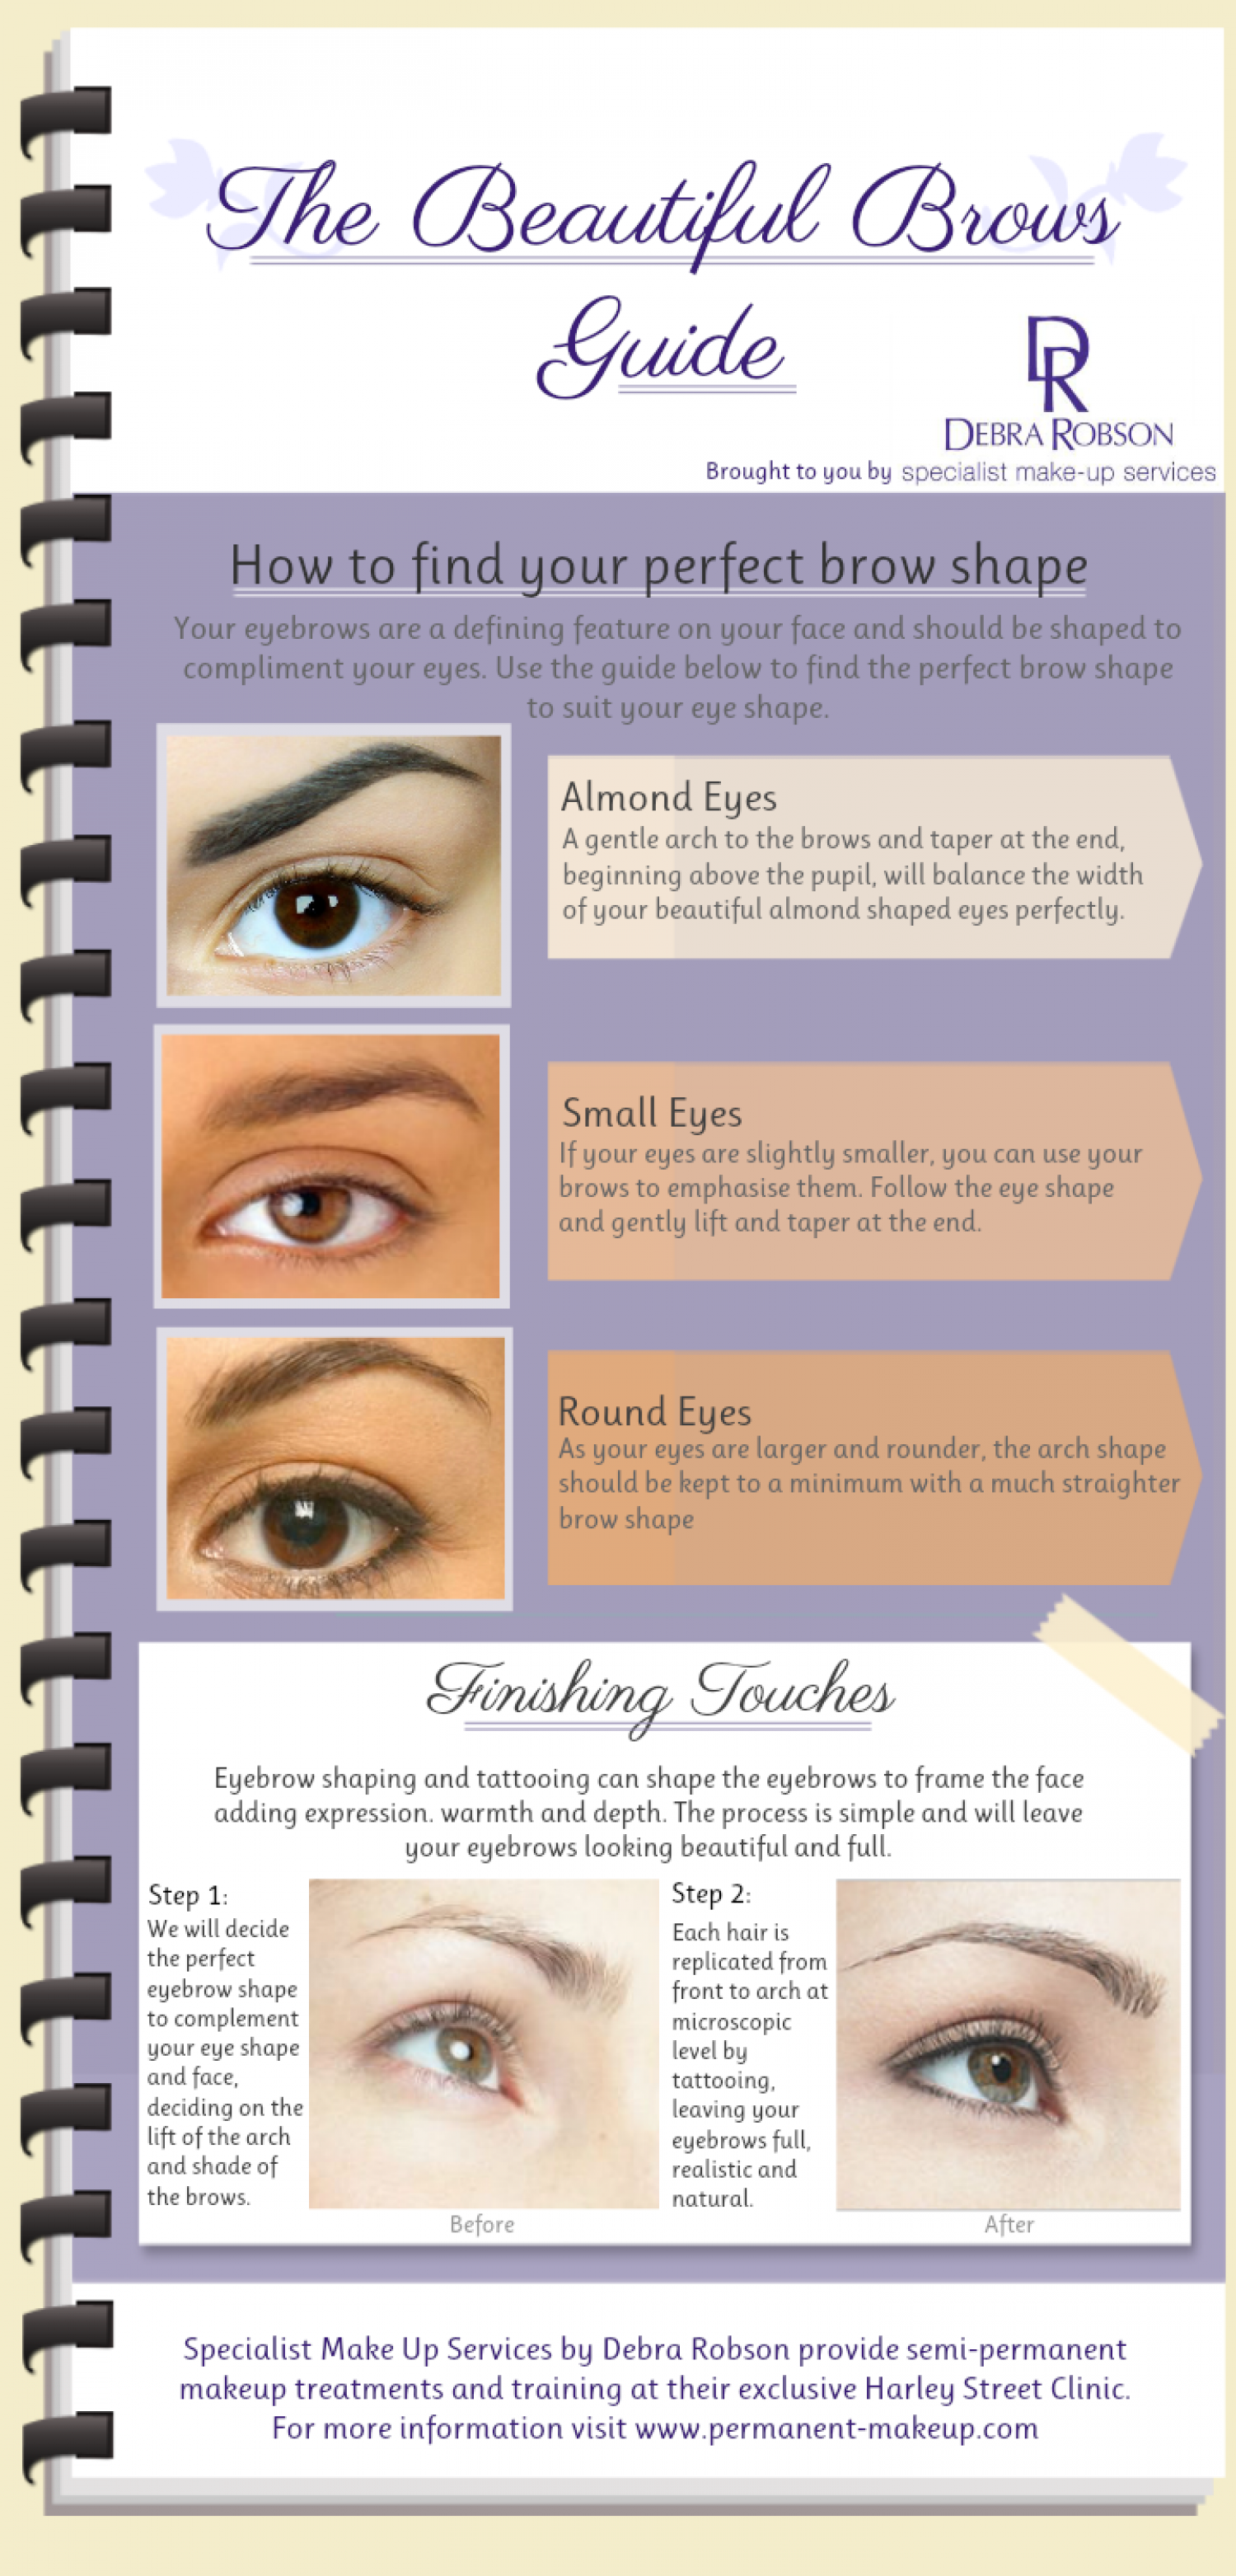 The Beautiful Eyebrows Guide | Visual.ly